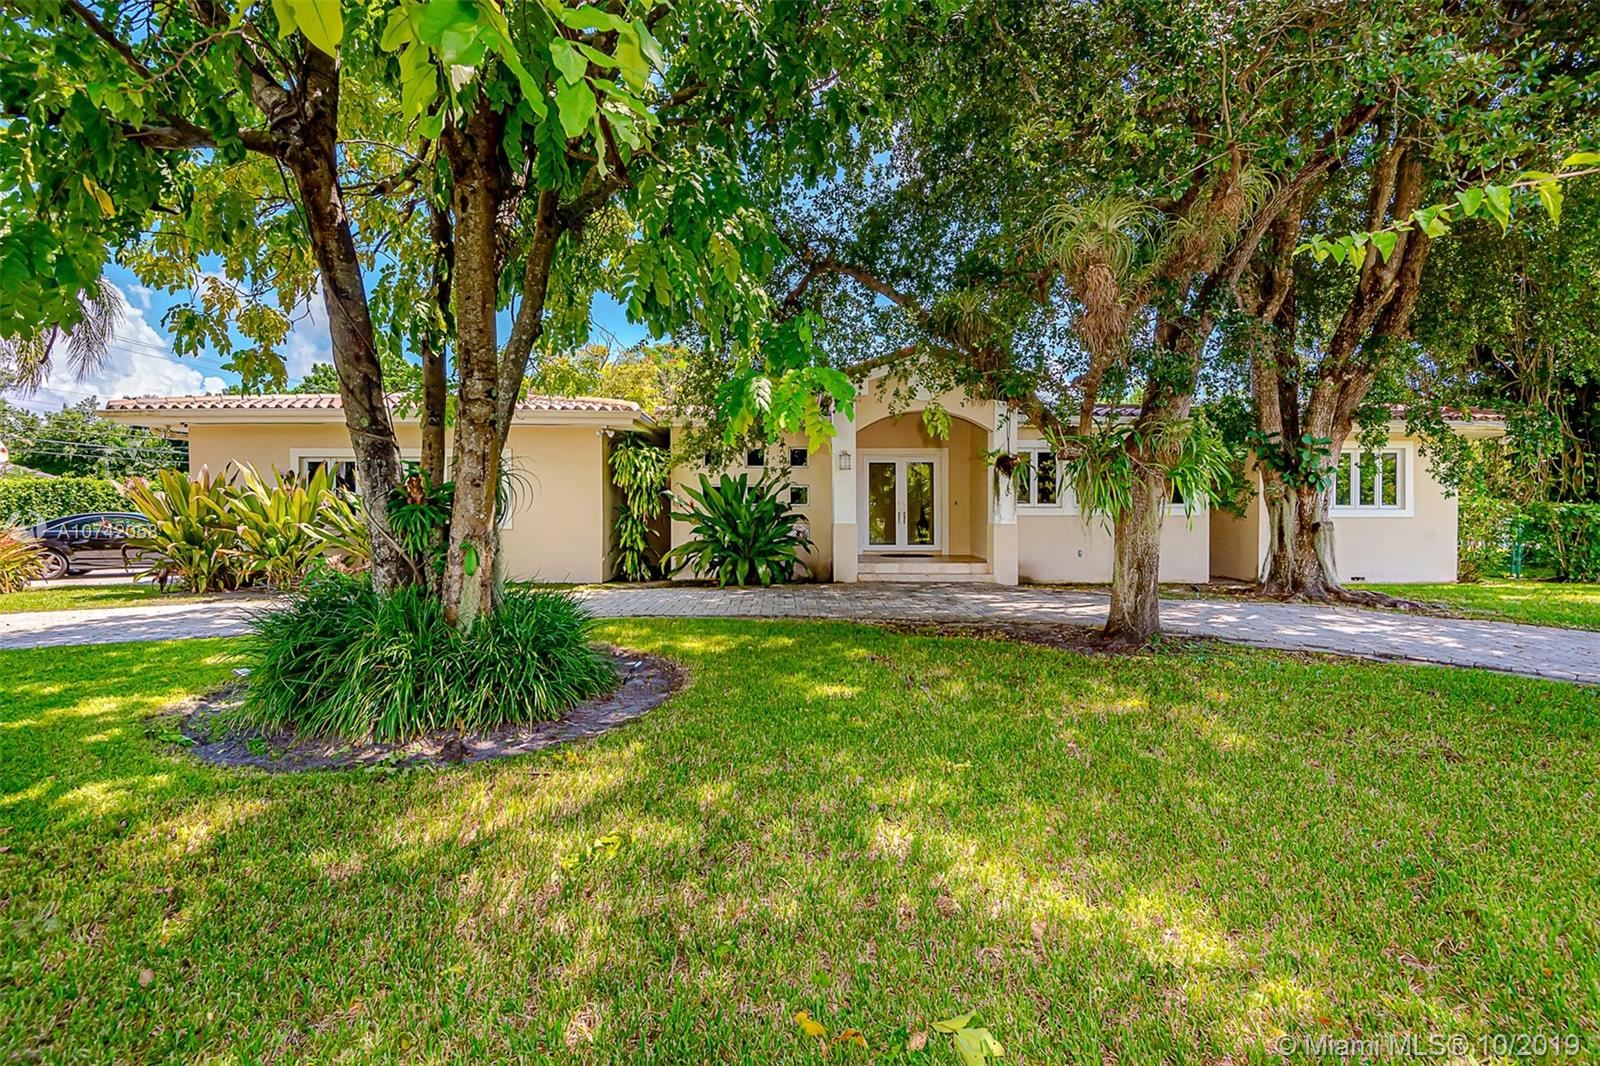 10851 SW 61st Ave, Pinecrest, FL 33156 - MLS#: A10742058